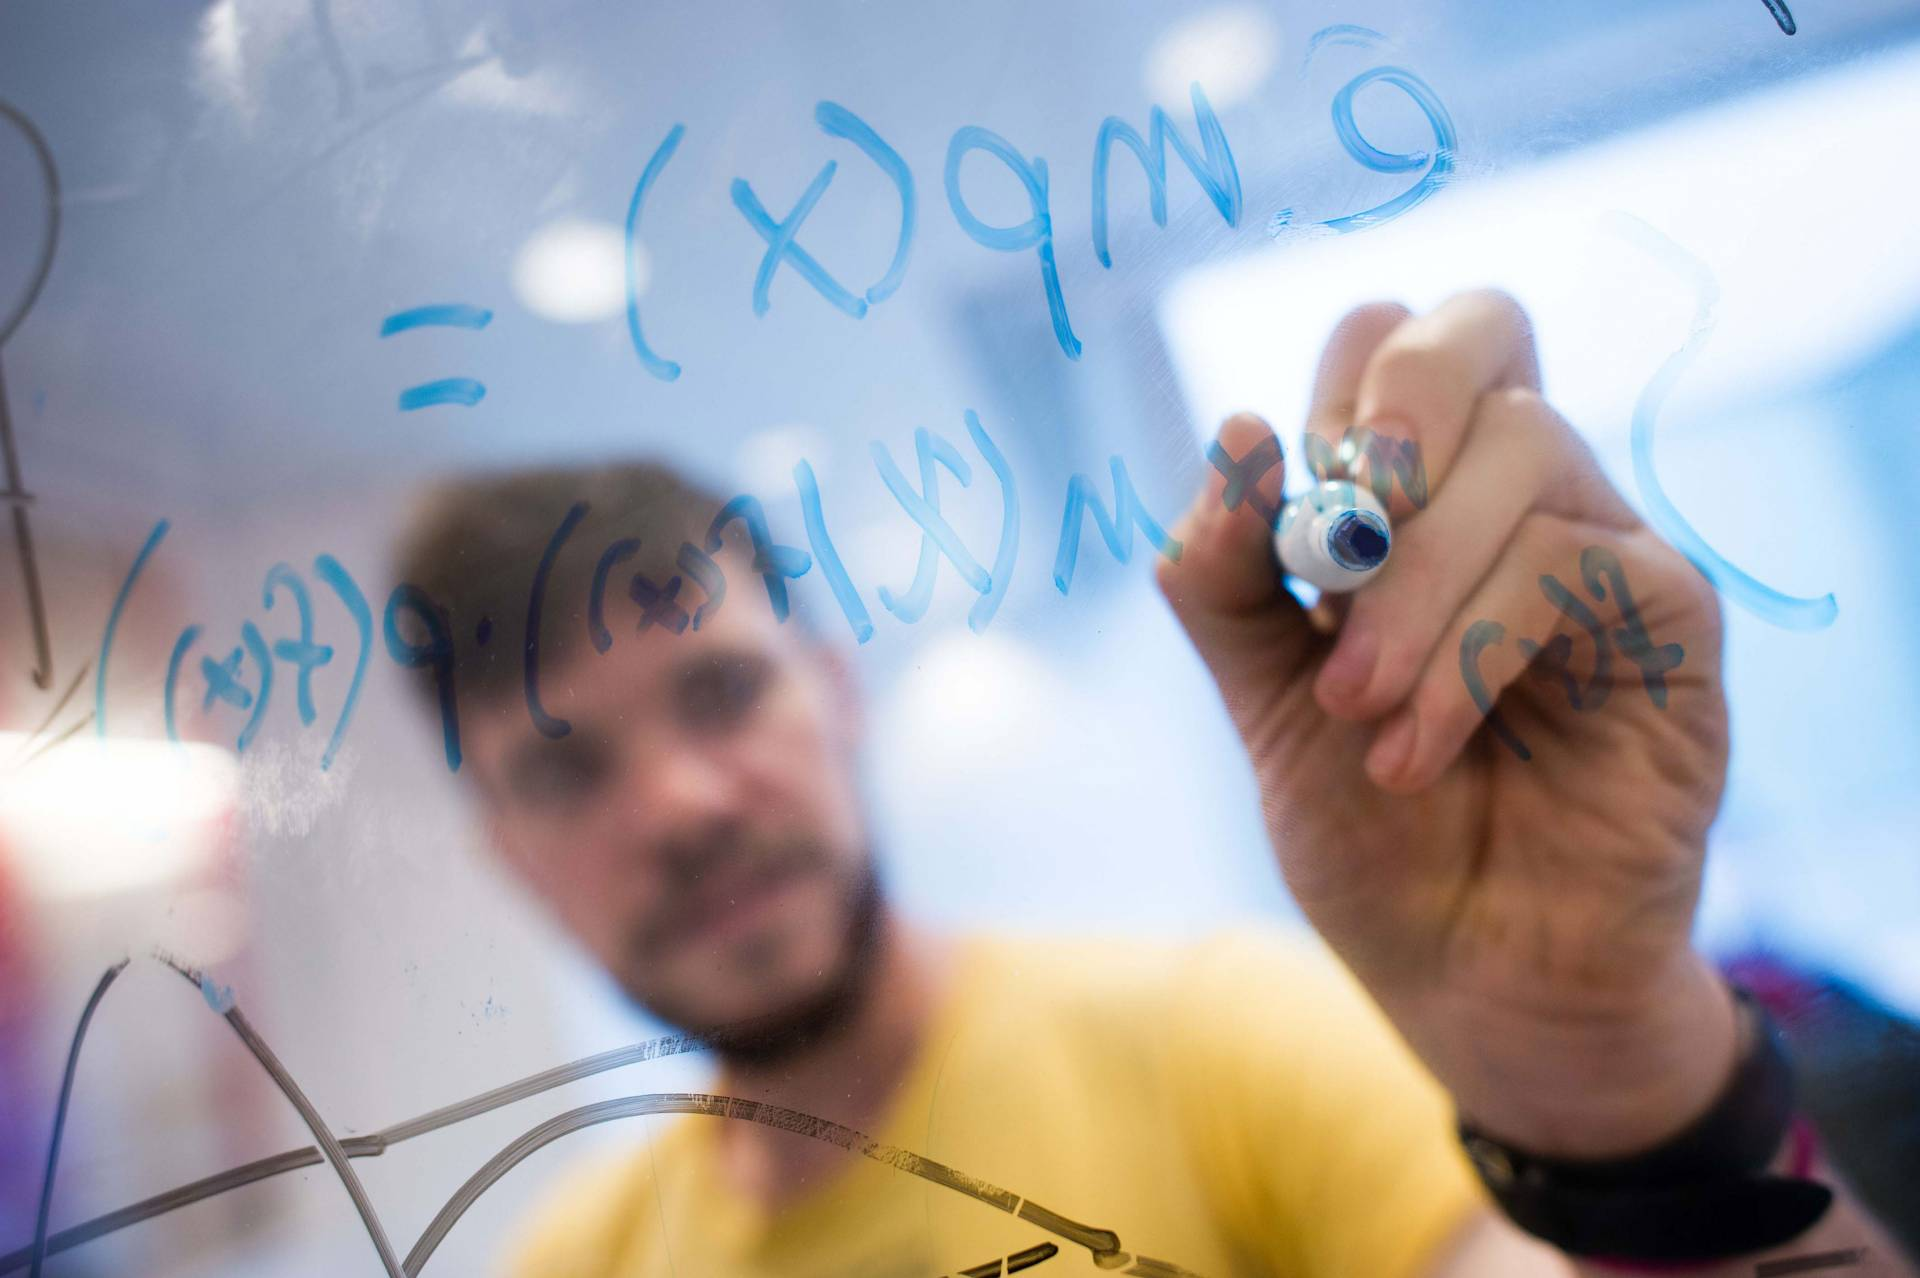 A student writes math formulas on a plexiglas surface